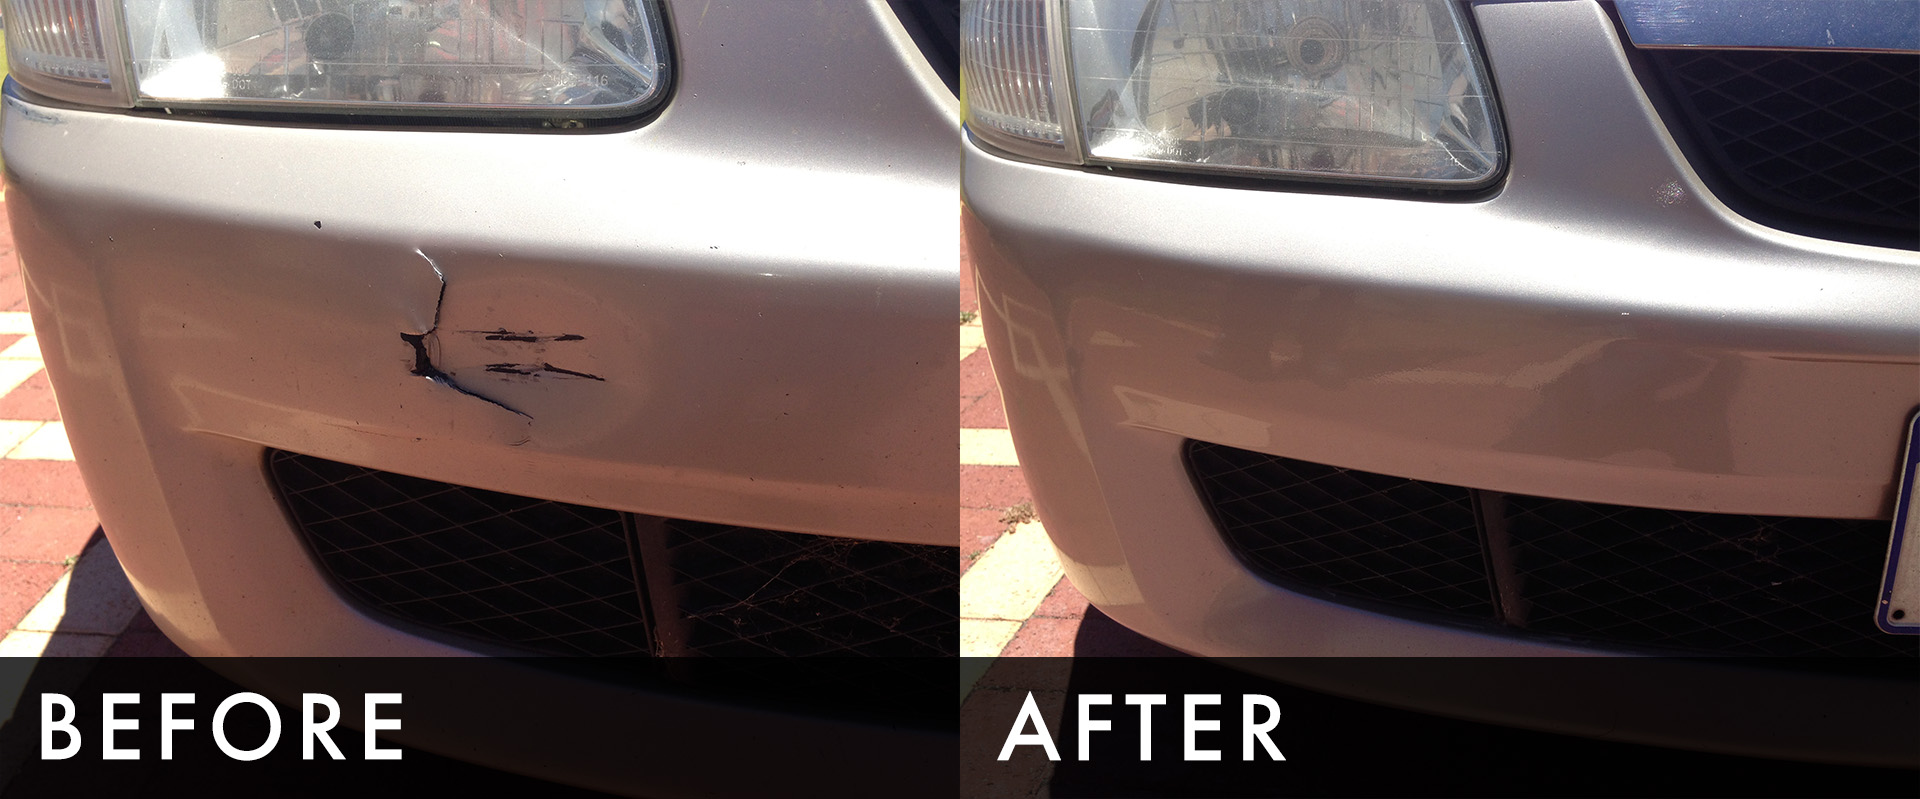 we specialise in bumper repairs and minor panel or paint ...